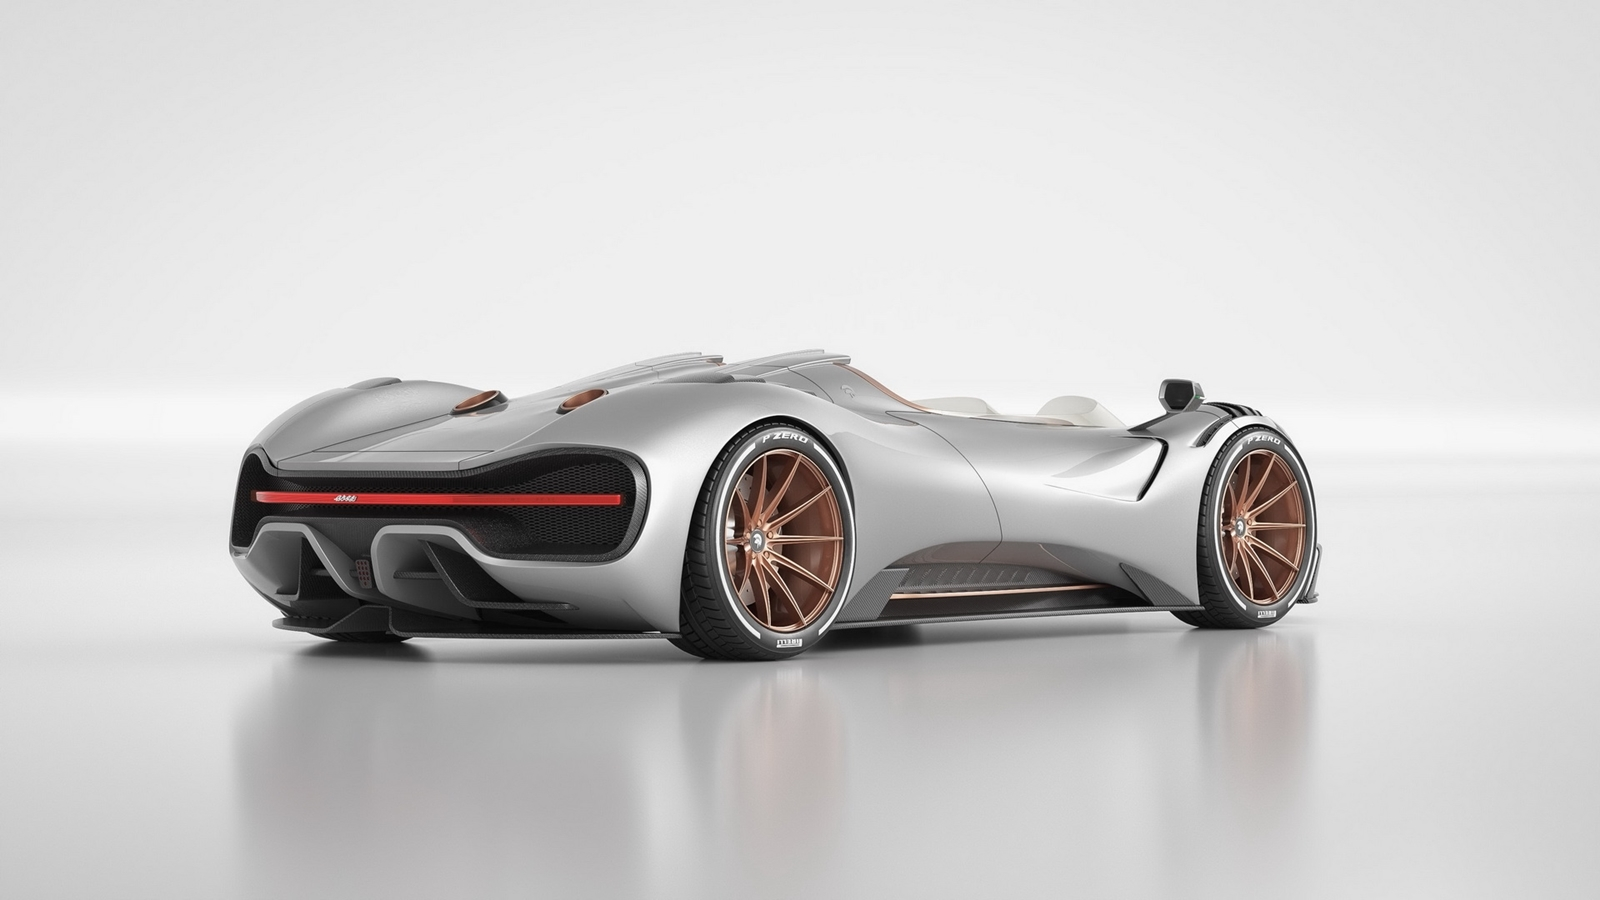 Ares S1 Project Spyder 1020 005